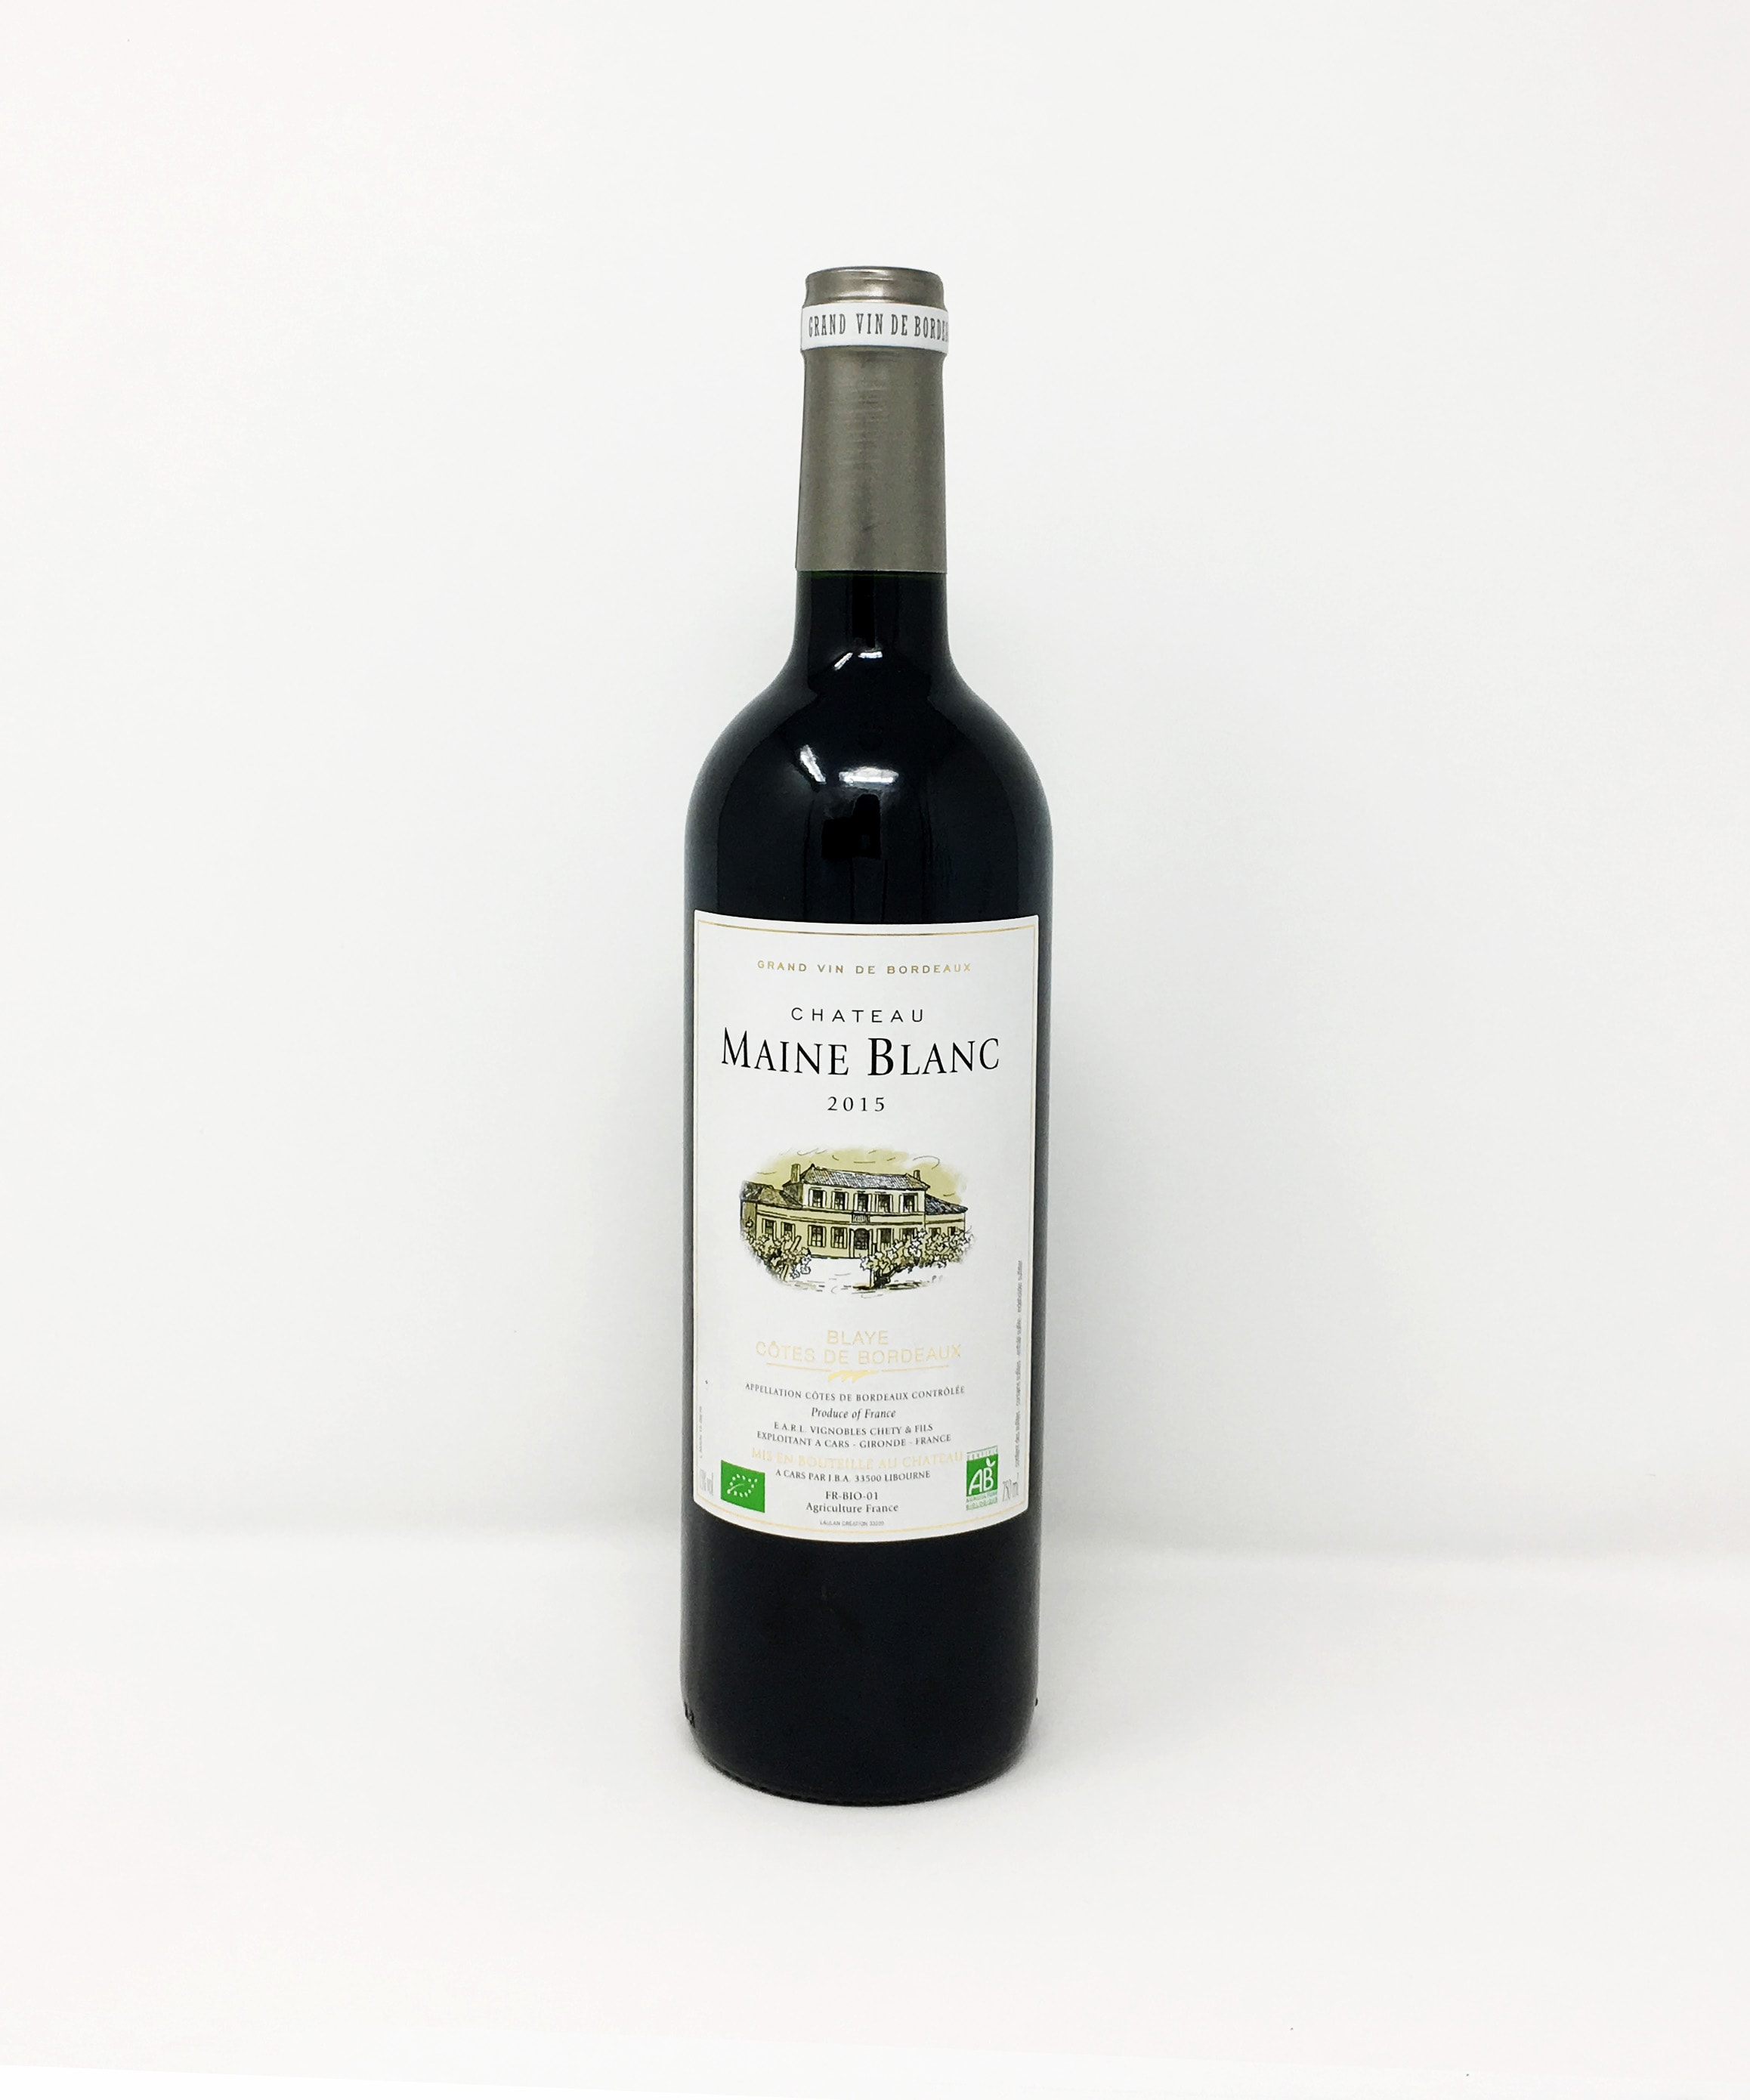 Chateau Maine Blanc